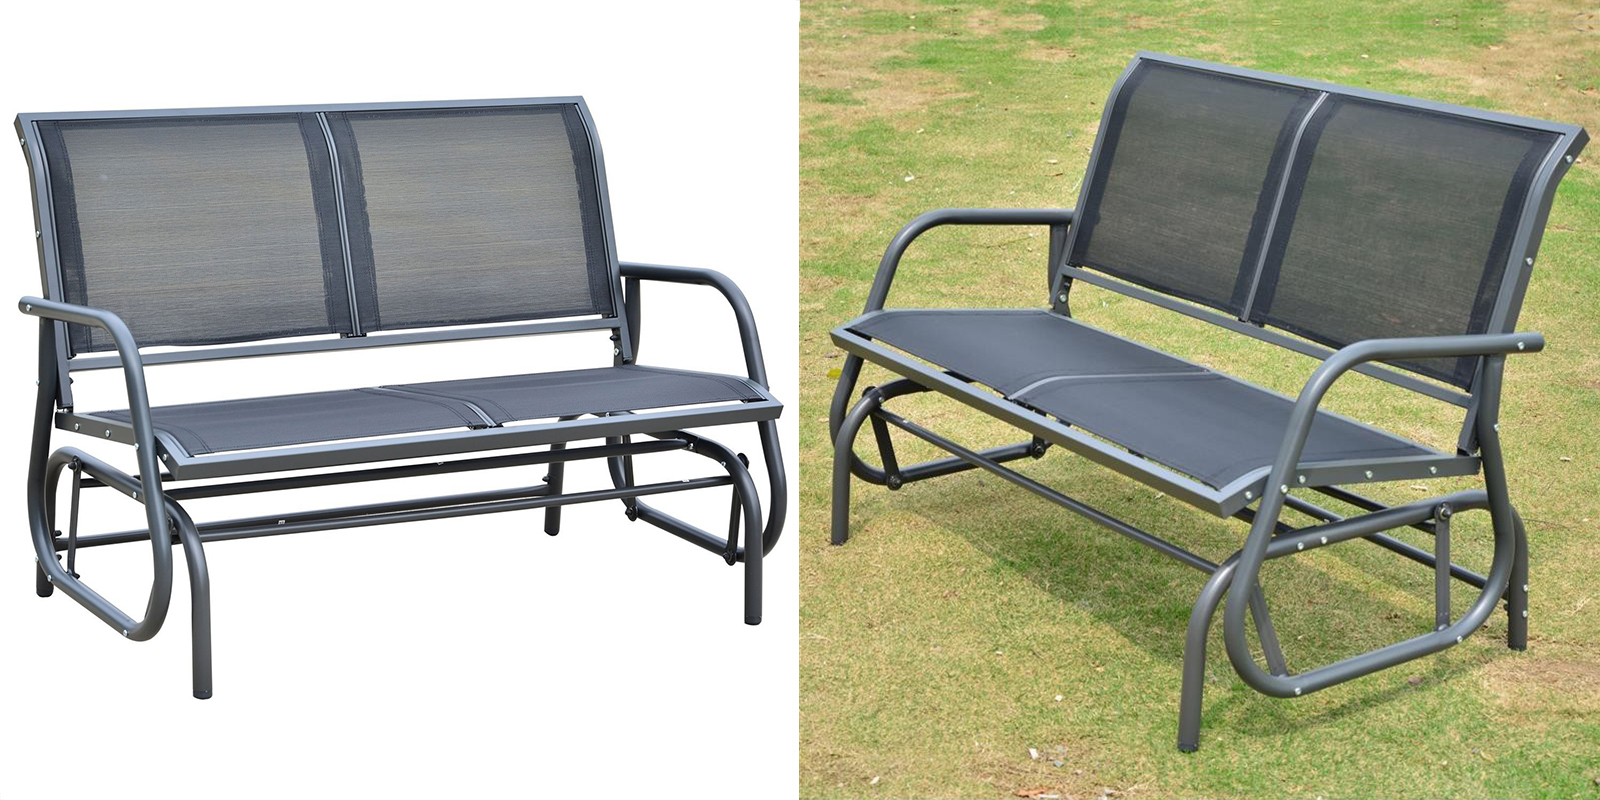 Outdoor Patio Glider Bench Swing — Homebnc With Outdoor Patio Swing Glider Bench Chairs (View 19 of 25)